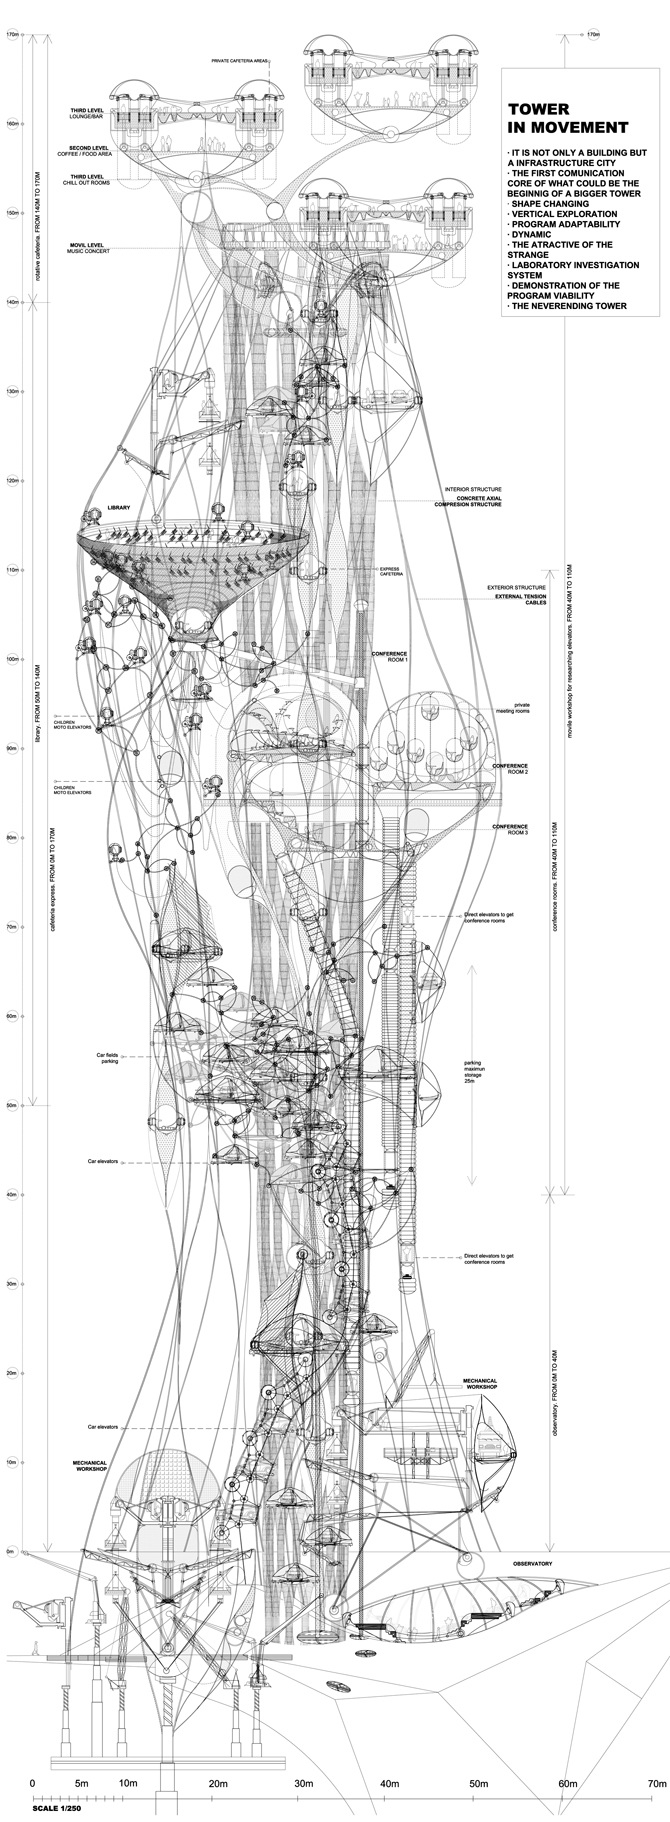 Elevator Tower Ana Pealba Ladder Diagrams Are An Adaptation Of Earlier Technology Called It Is Not About Making A Nice Building Up Machine Able To Adapt Itself Into Its Reality